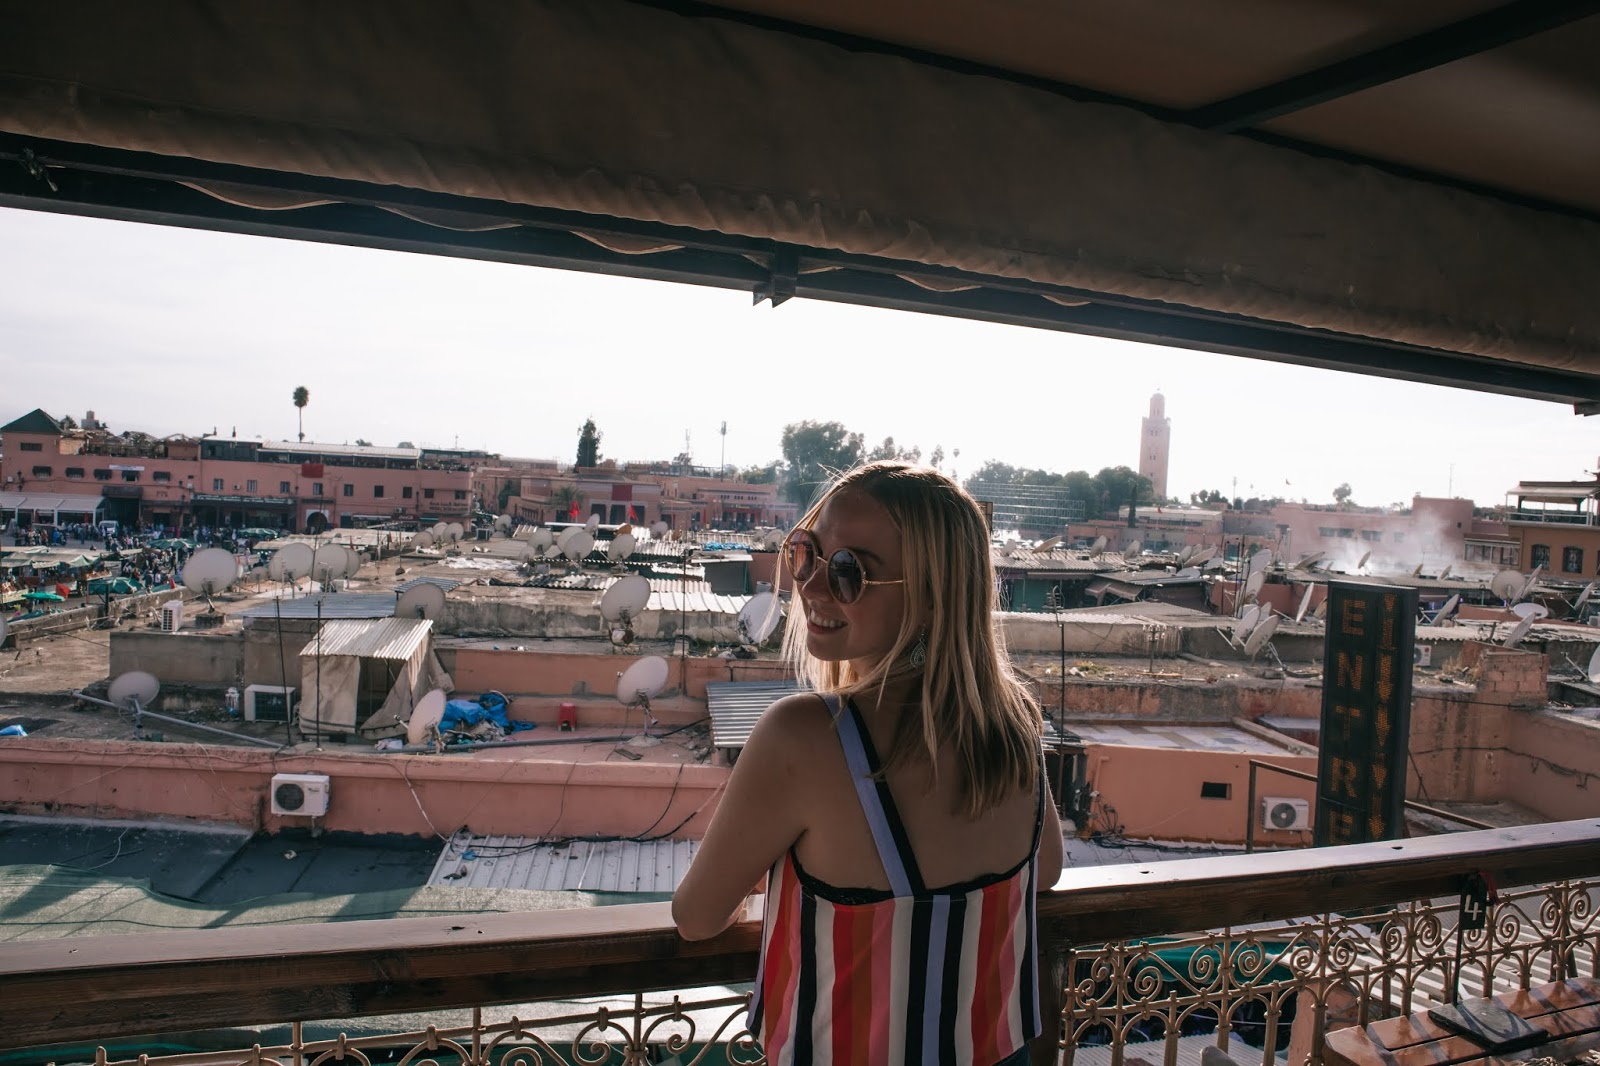 Suz and the Sun, Suz and the Sun travel, Marrakesh 2018, Marrakesh travel, Suz and the Sun style, Cafe l'Ancien